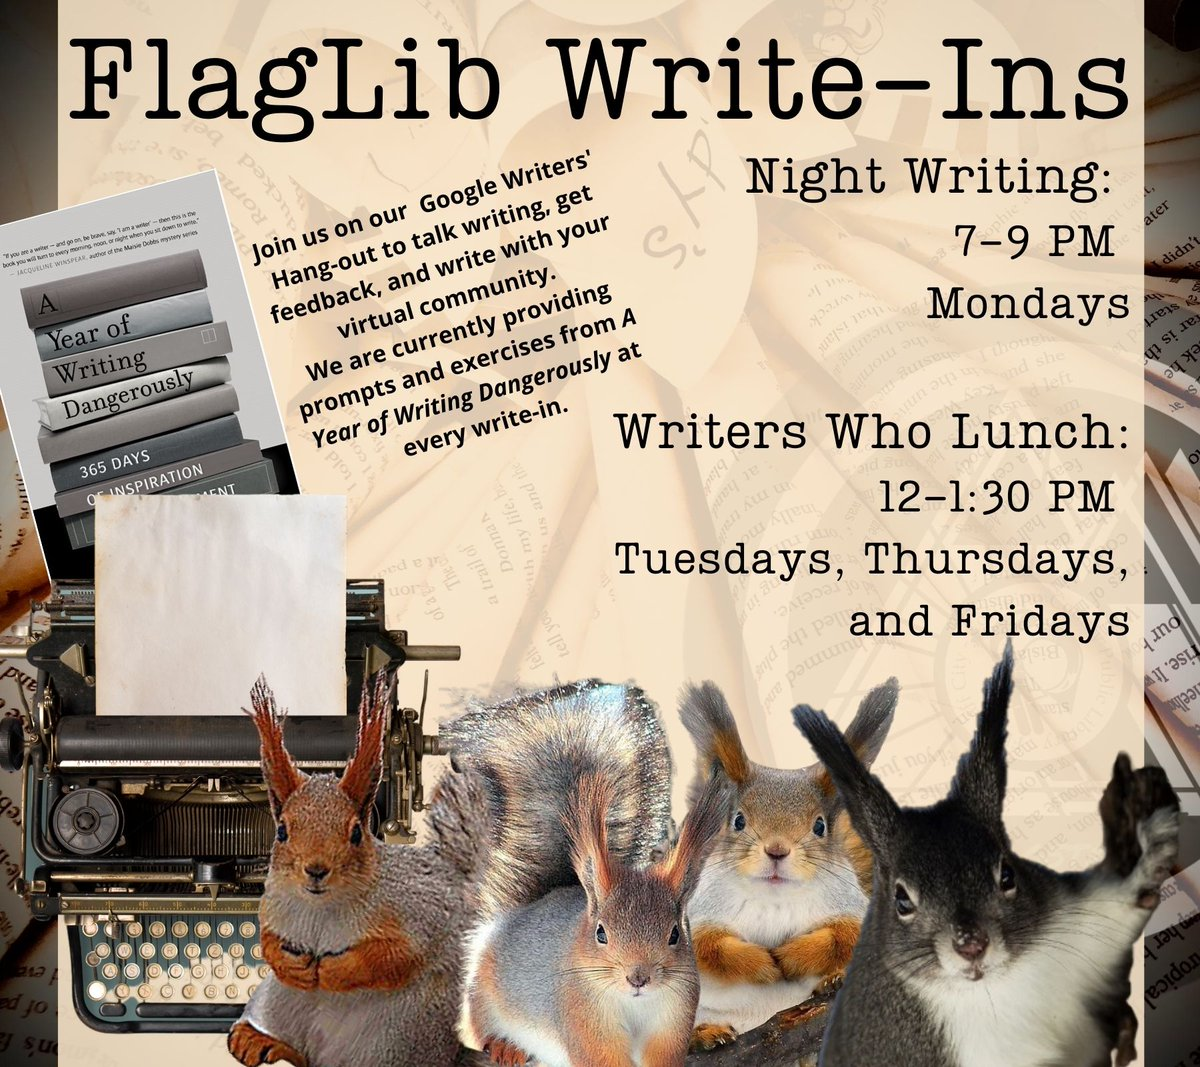 Looking for some writers to write with or talk to? We are in the chat now!